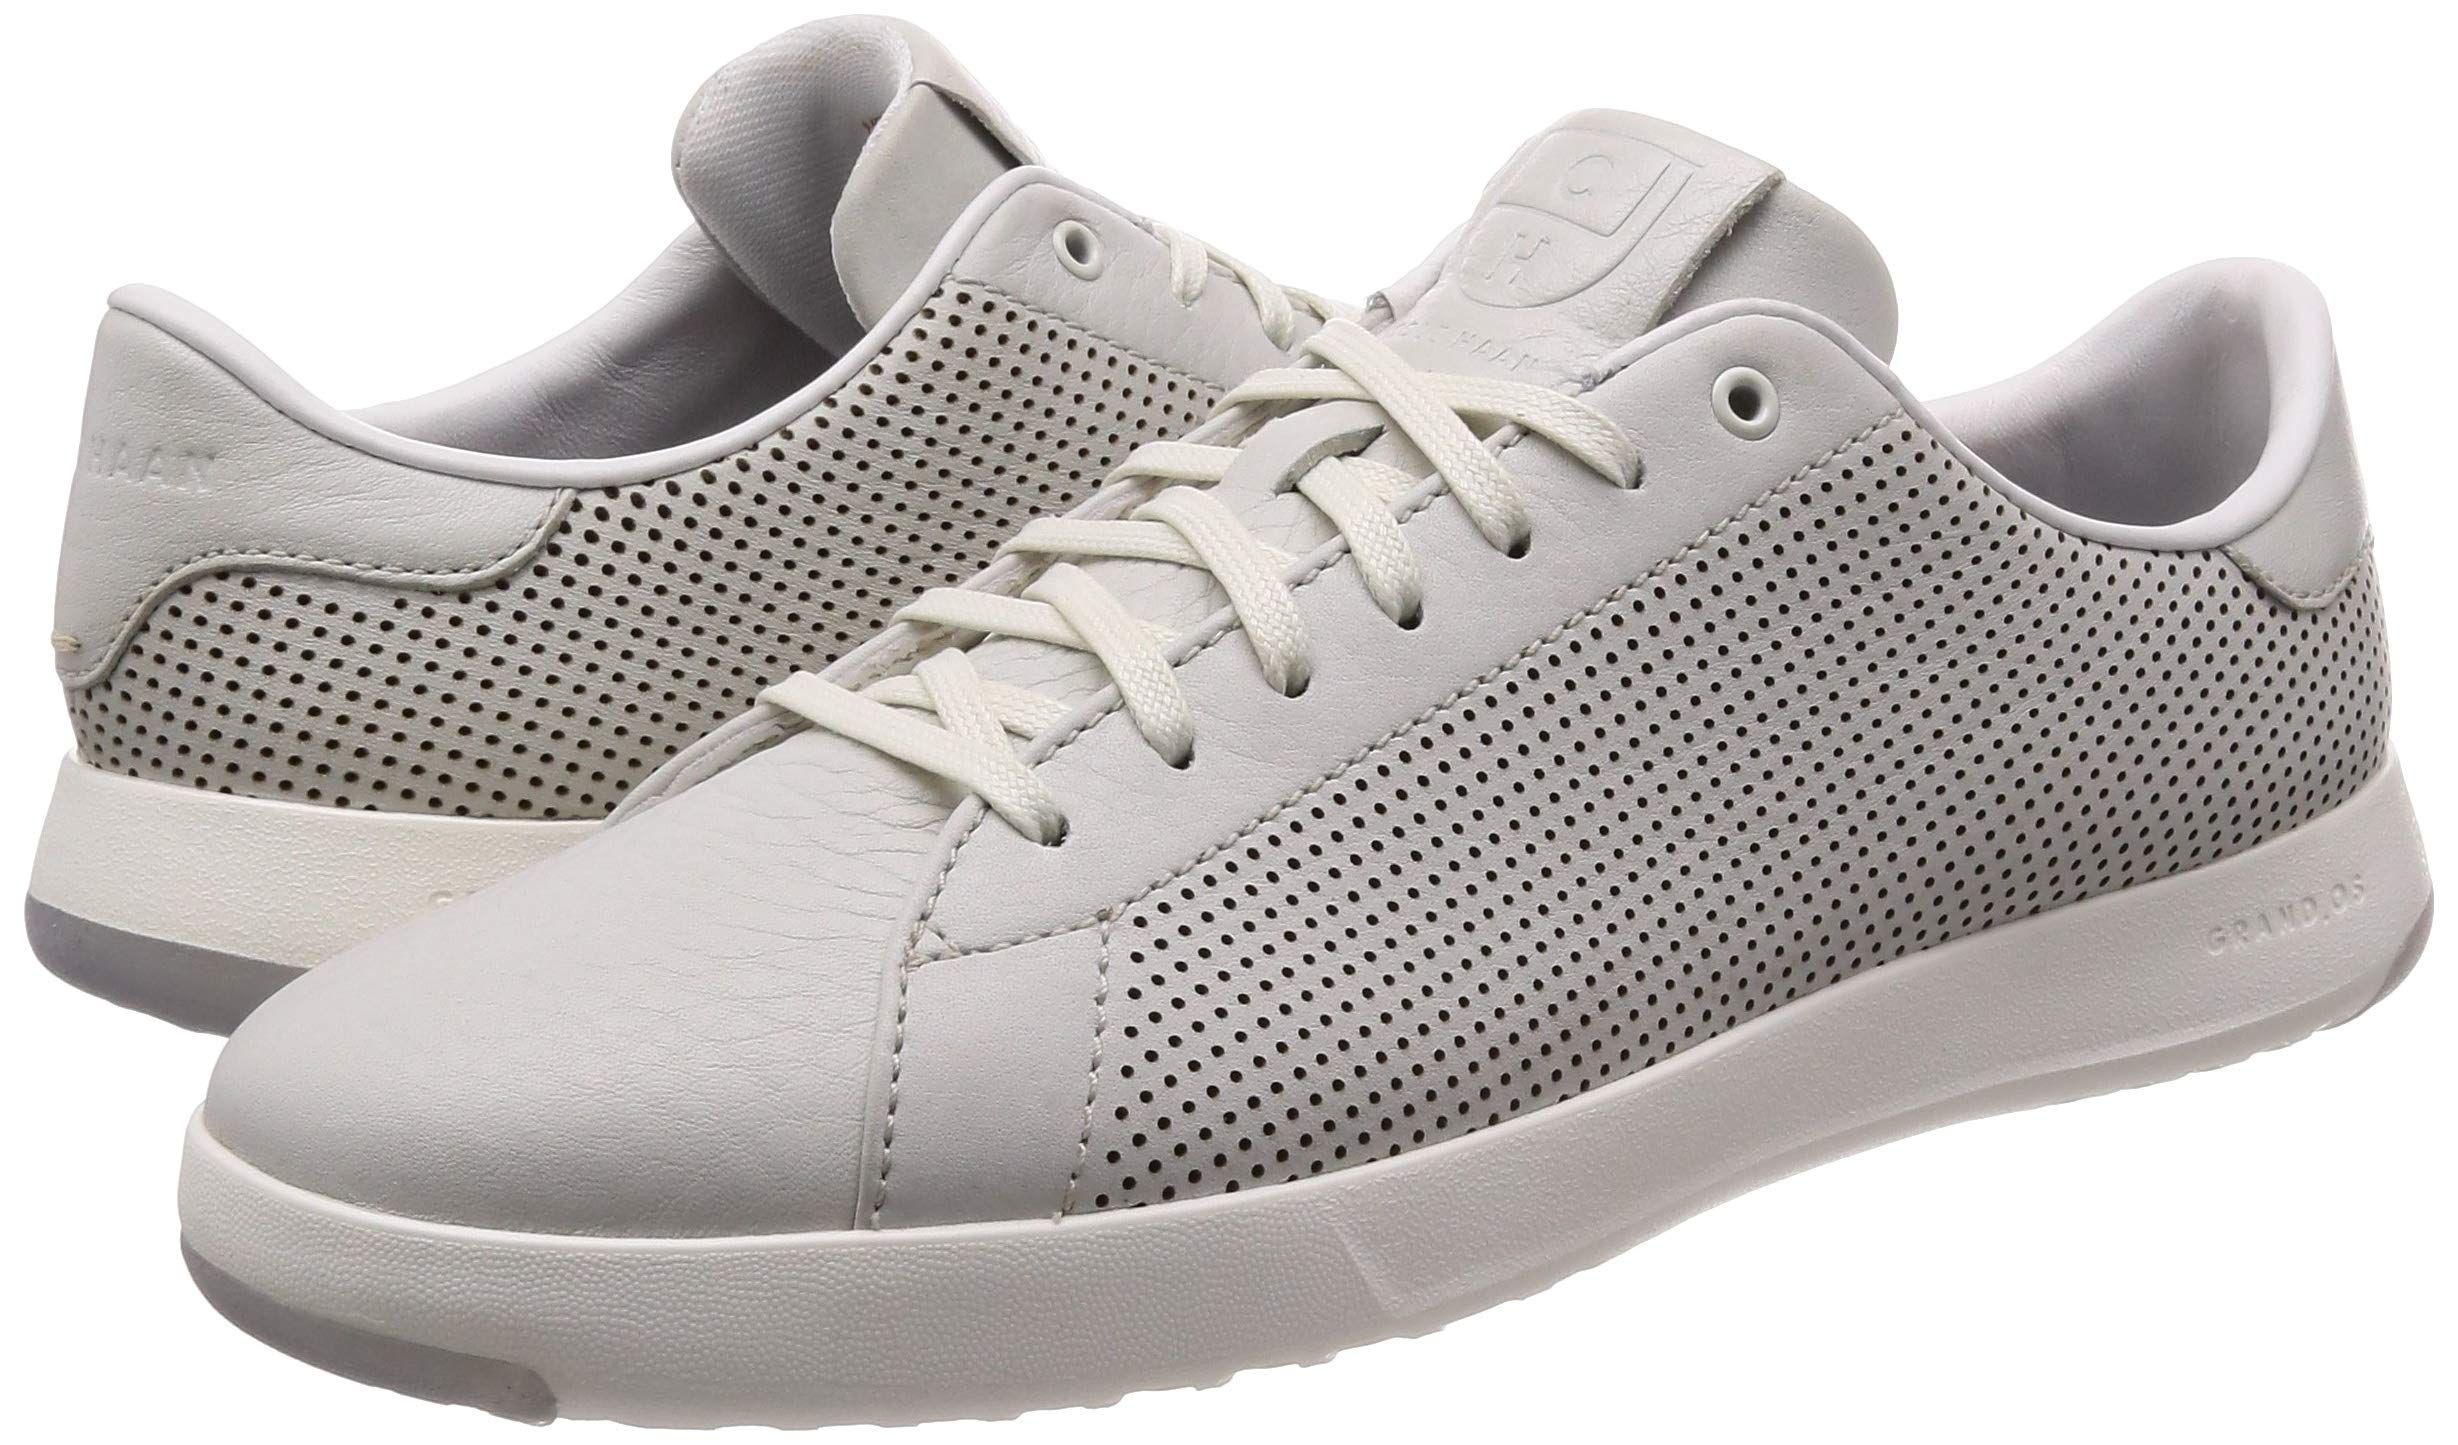 Cole Haan Mens Grandpro Tennis Sneaker 7 Chalk Tumbled Leather by Cole Haan (Image #5)